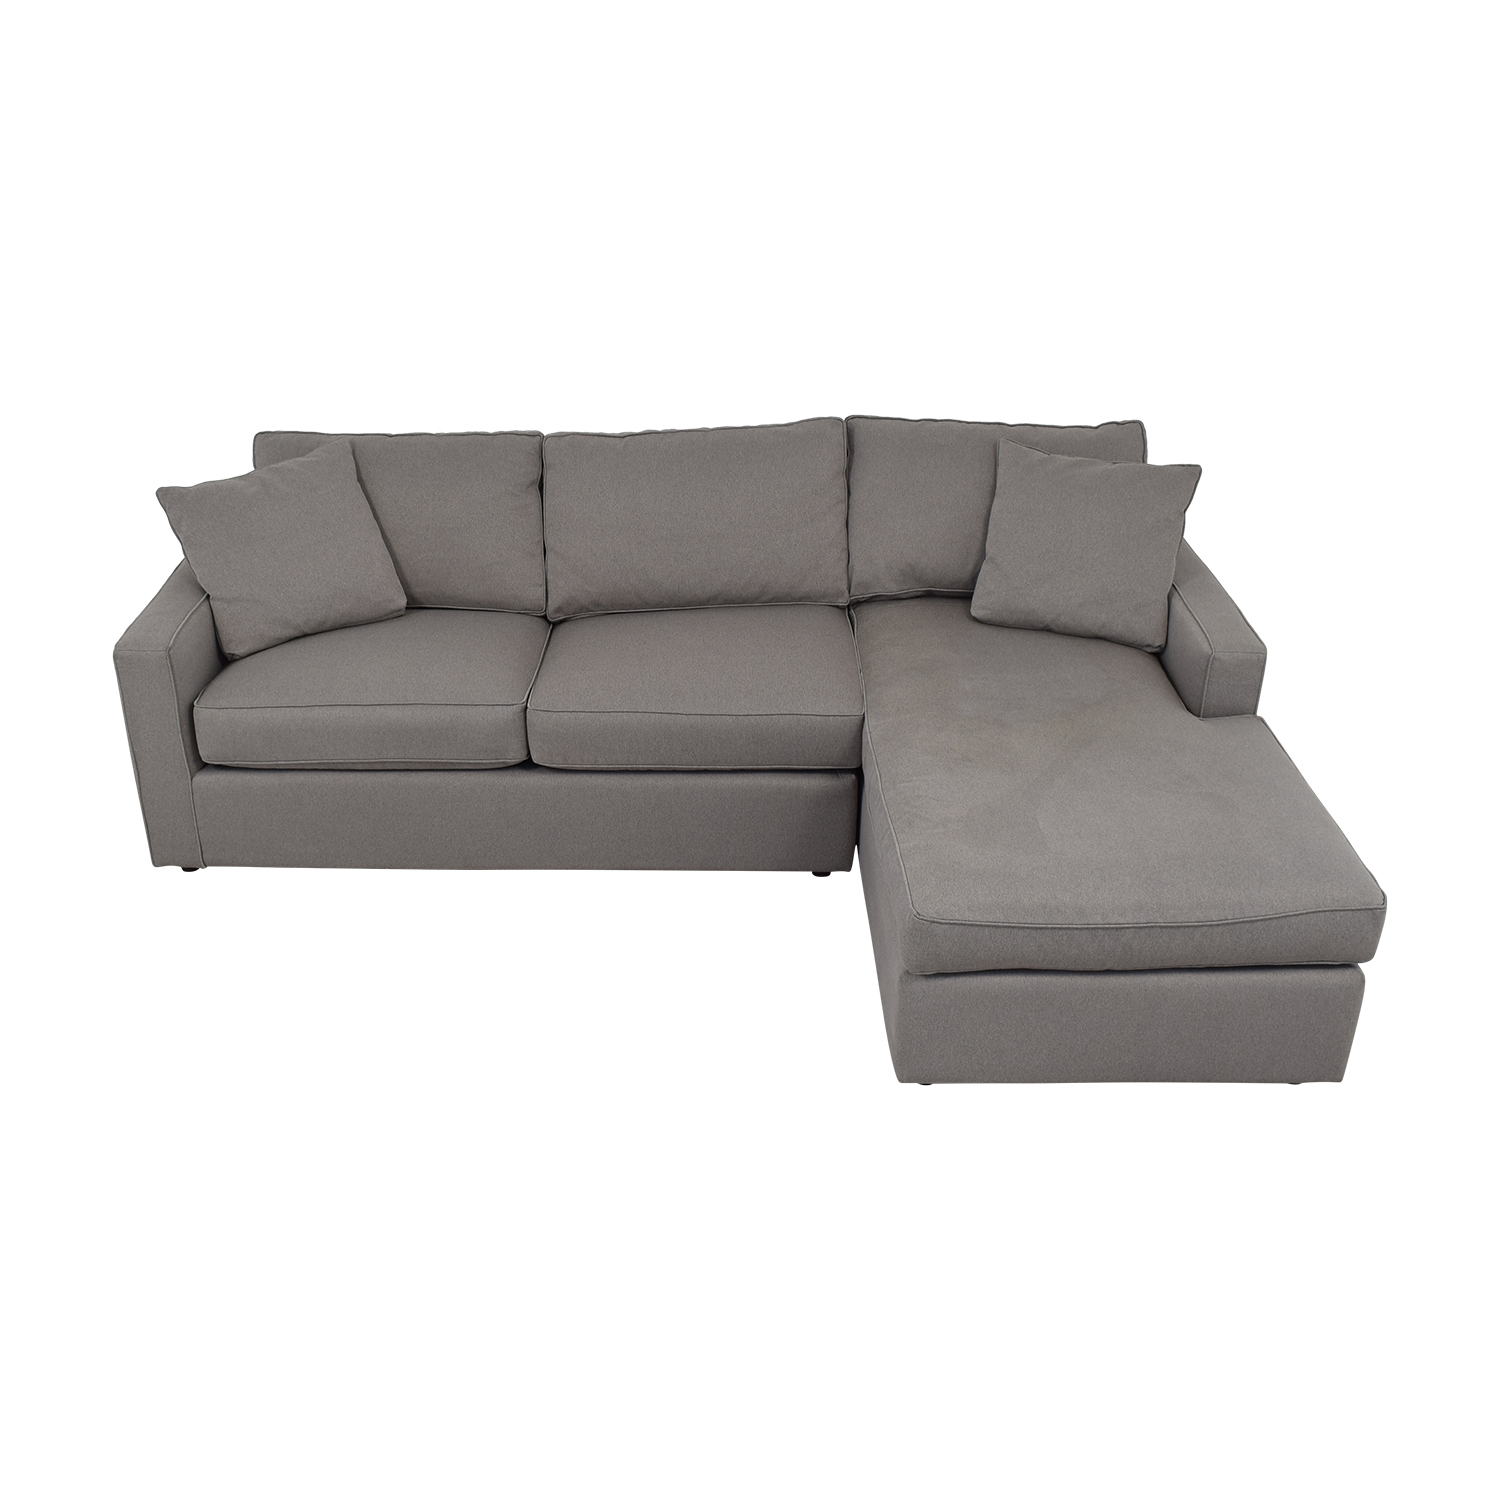 Room & Board York Sofa with Chaise / Sectionals